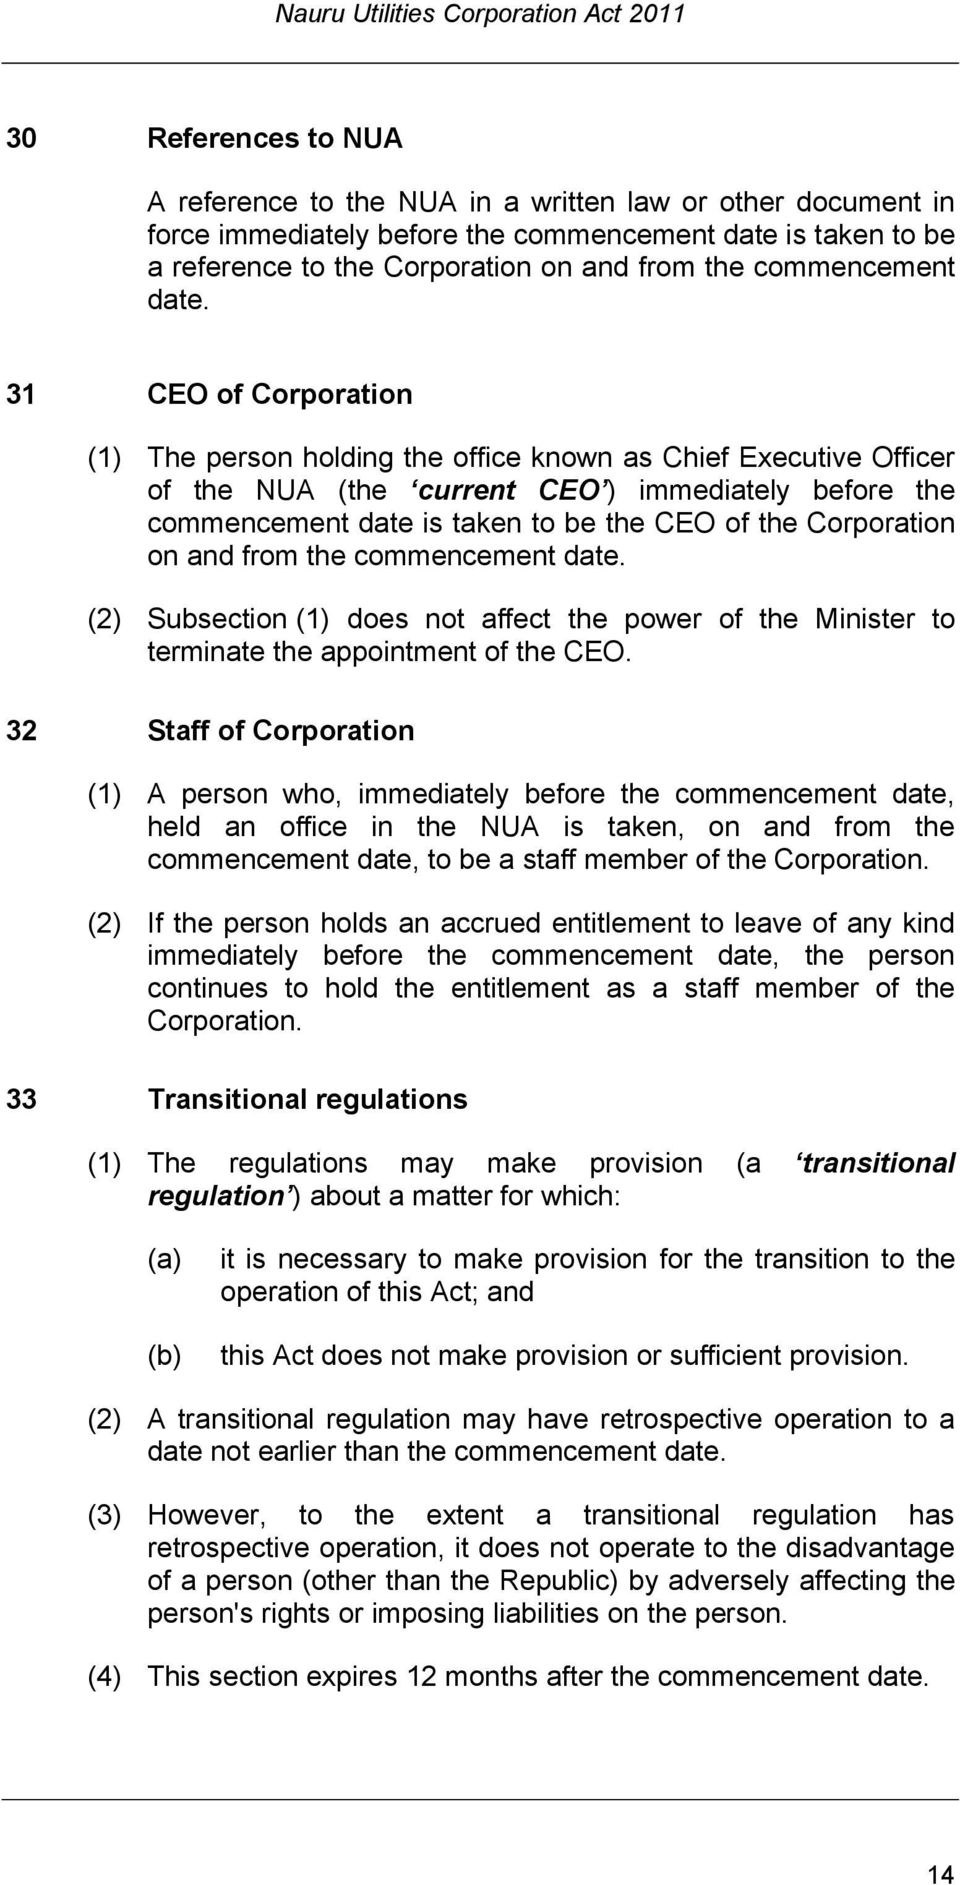 31 CEO of Corporation (1) The person holding the office known as Chief Executive Officer of the NUA (the current CEO ) immediately before the commencement date is taken to be the CEO of the